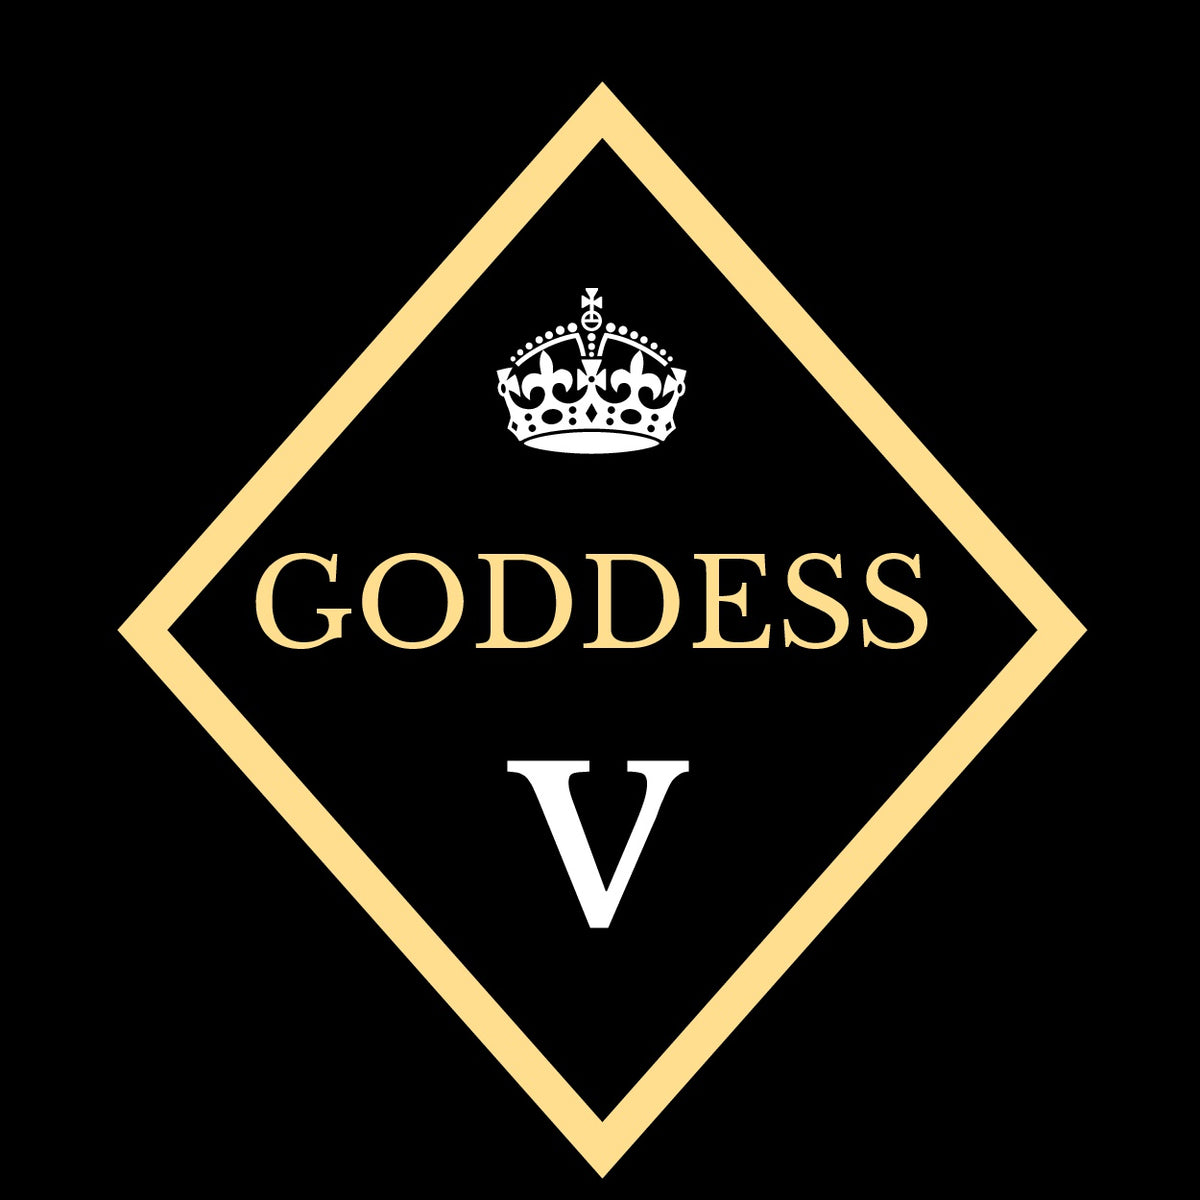 The ORIGINAL GODDESS V Organic Pure Hyaluronic Acid & Vit C Serum-Nature's Anti-aging Miracle